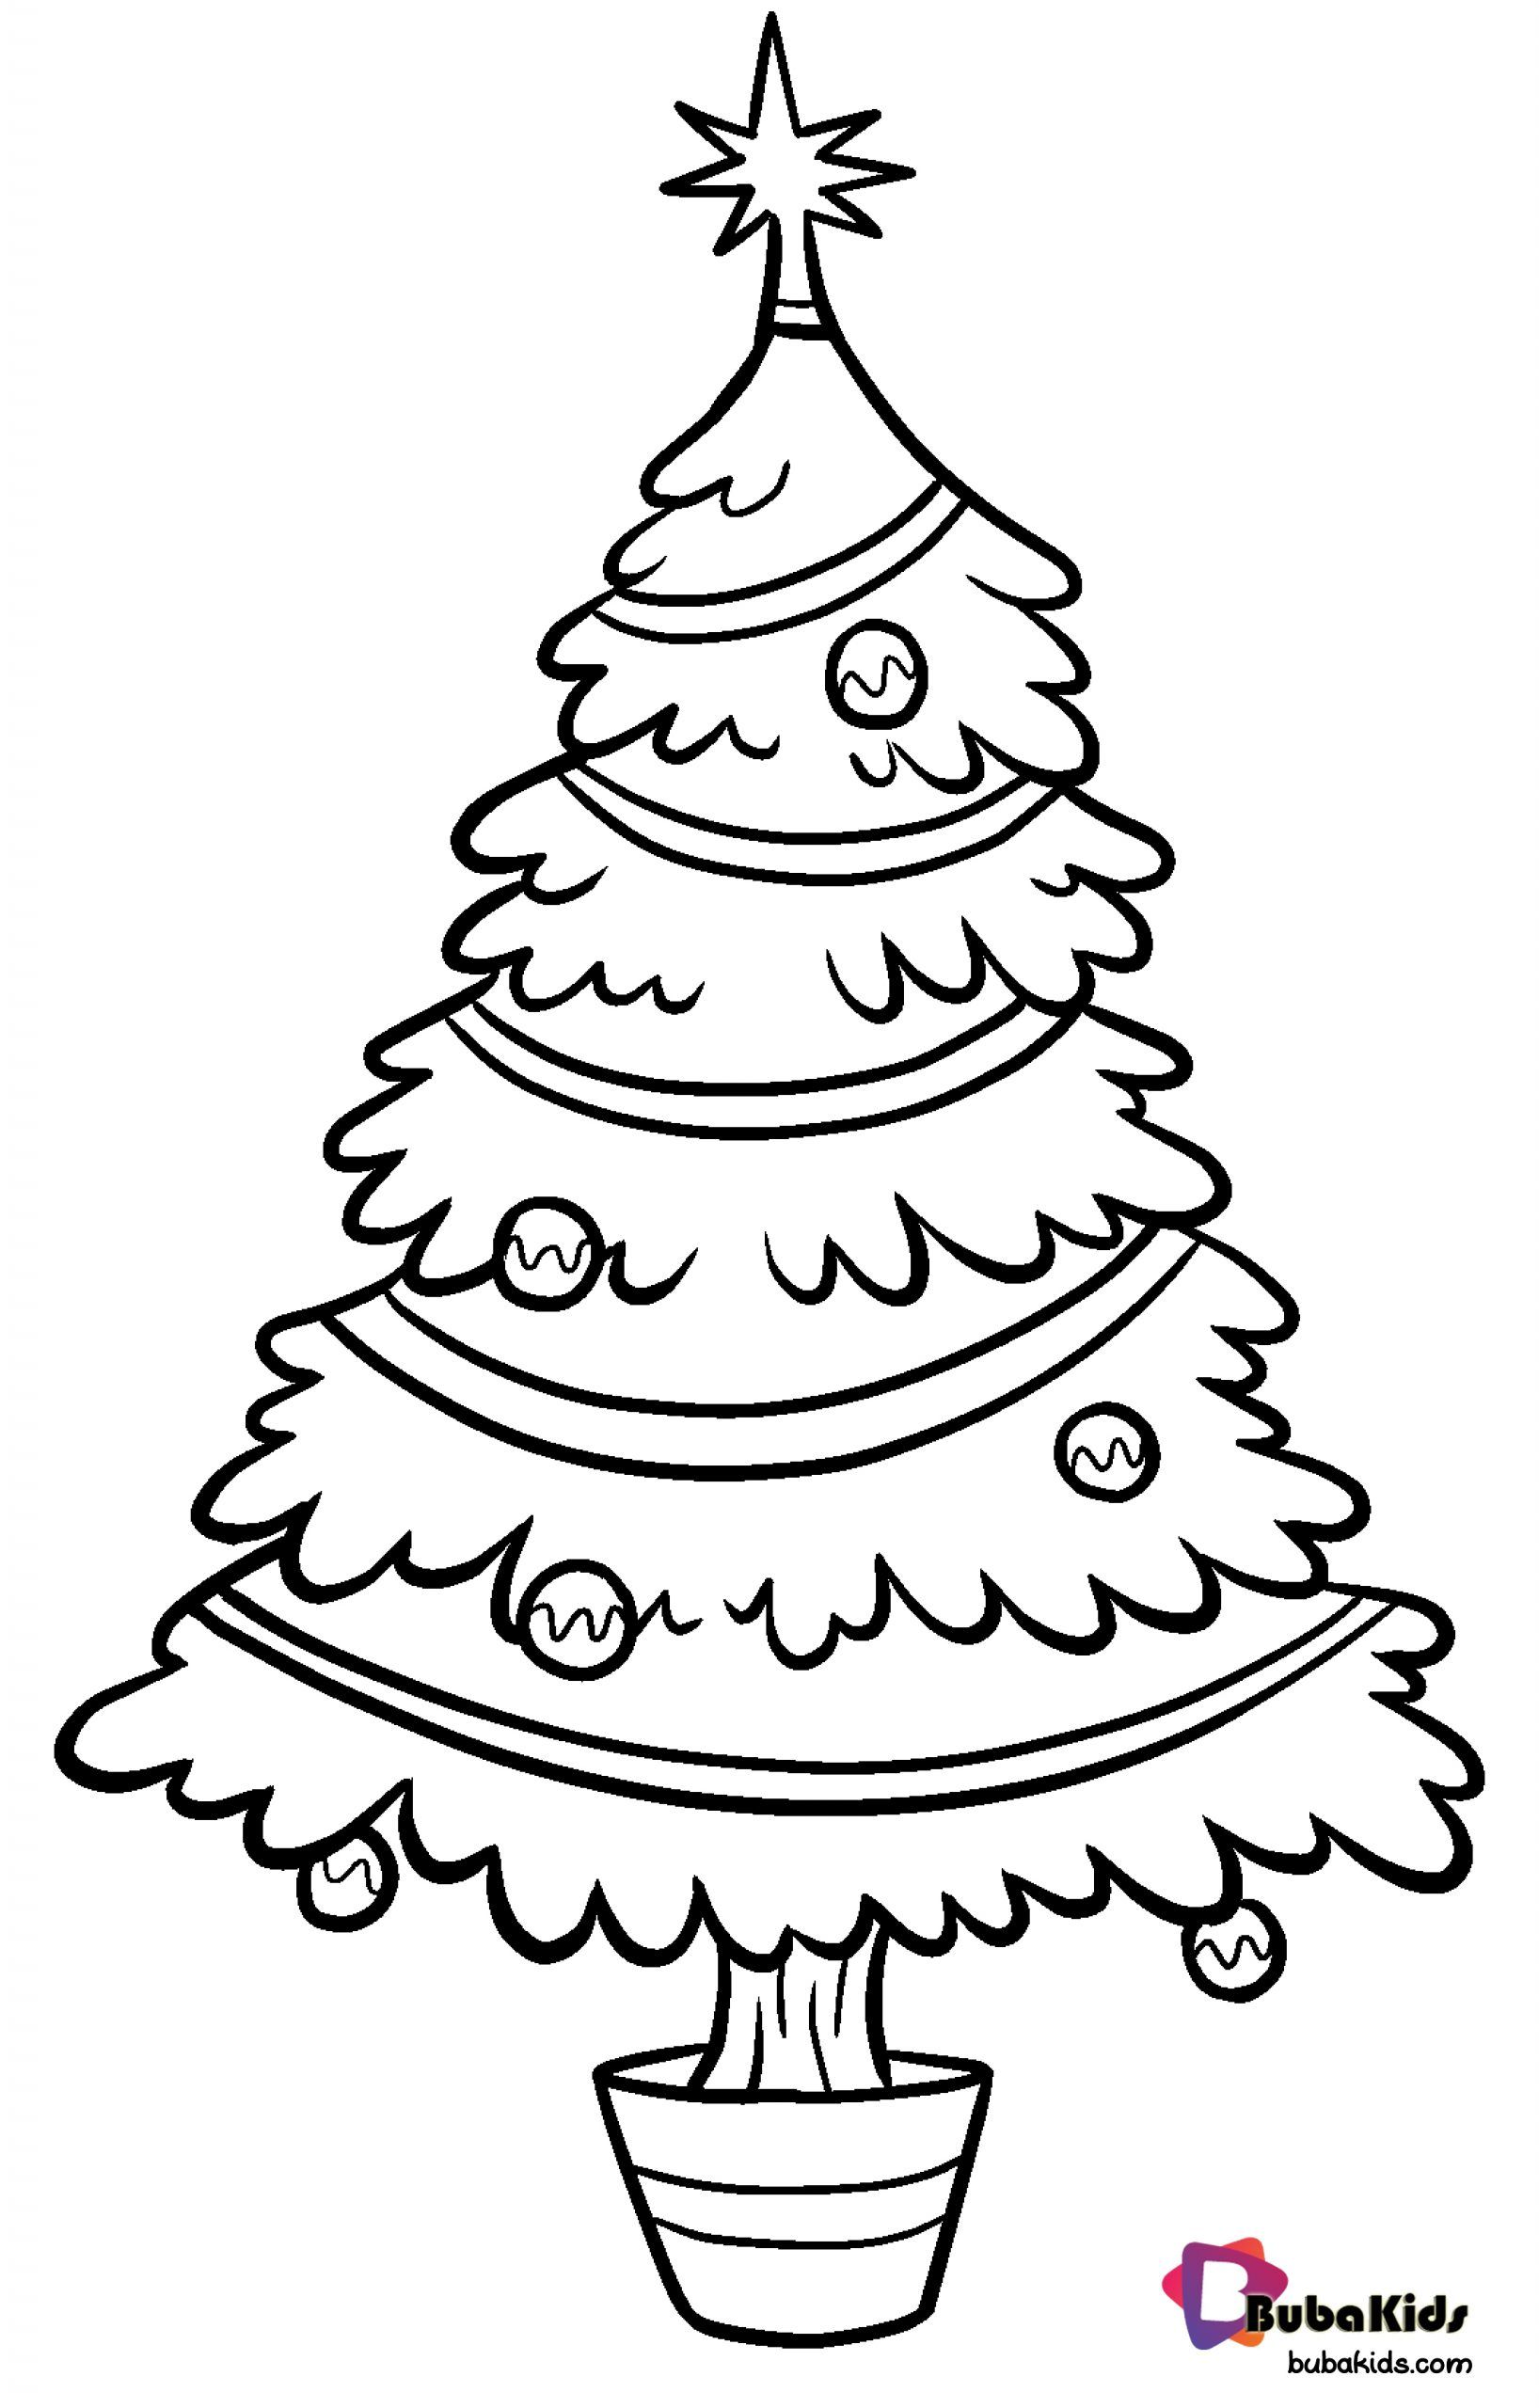 Free Download And Printable Christmas Tree Coloring Pages Collection Of Cartoon Coloring Pa Christmas Tree Template Christmas Tree Clipart Tree Coloring Page